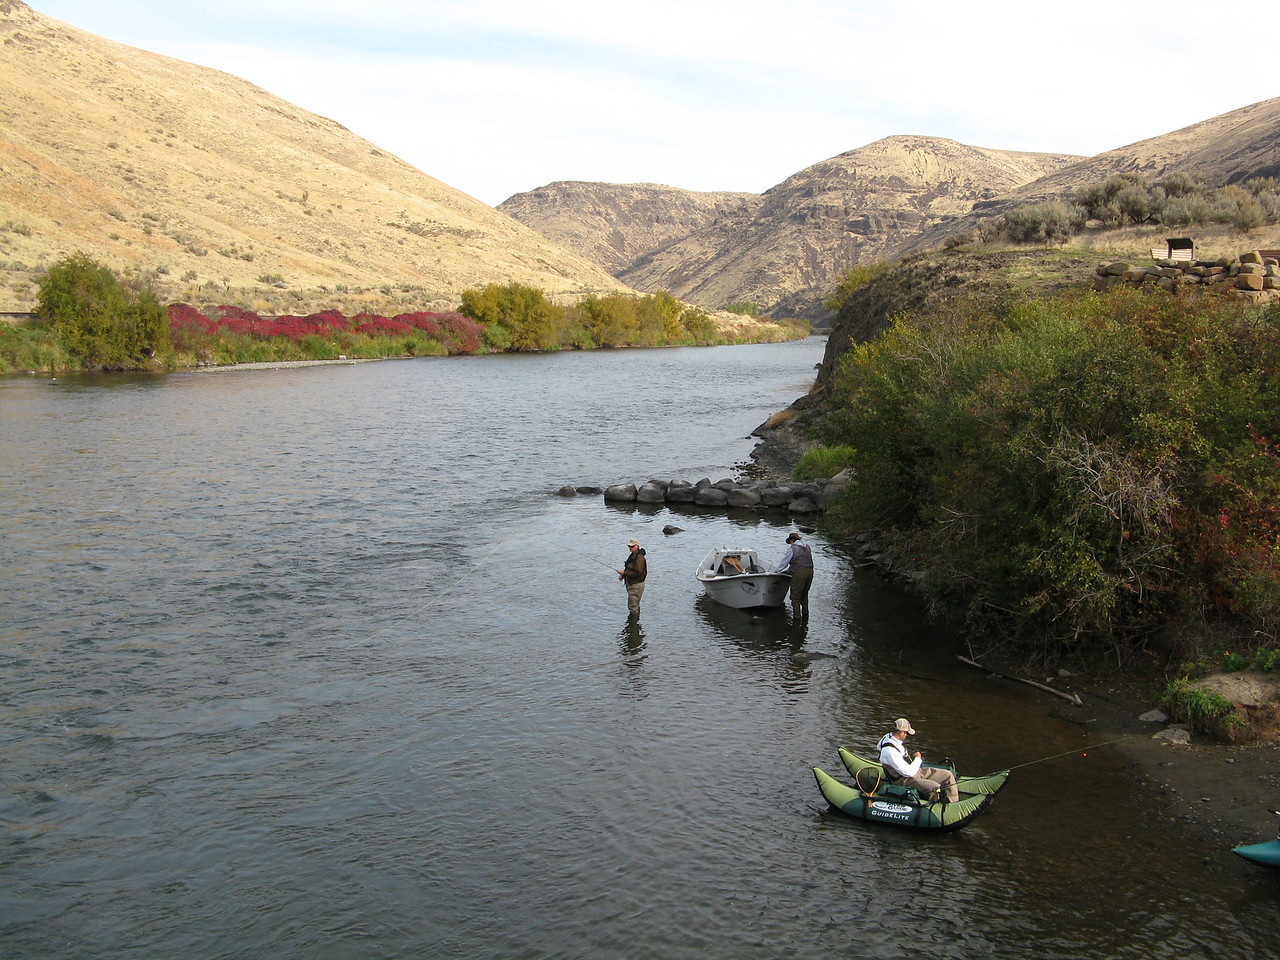 The Yakima River is a popular fishing stream.